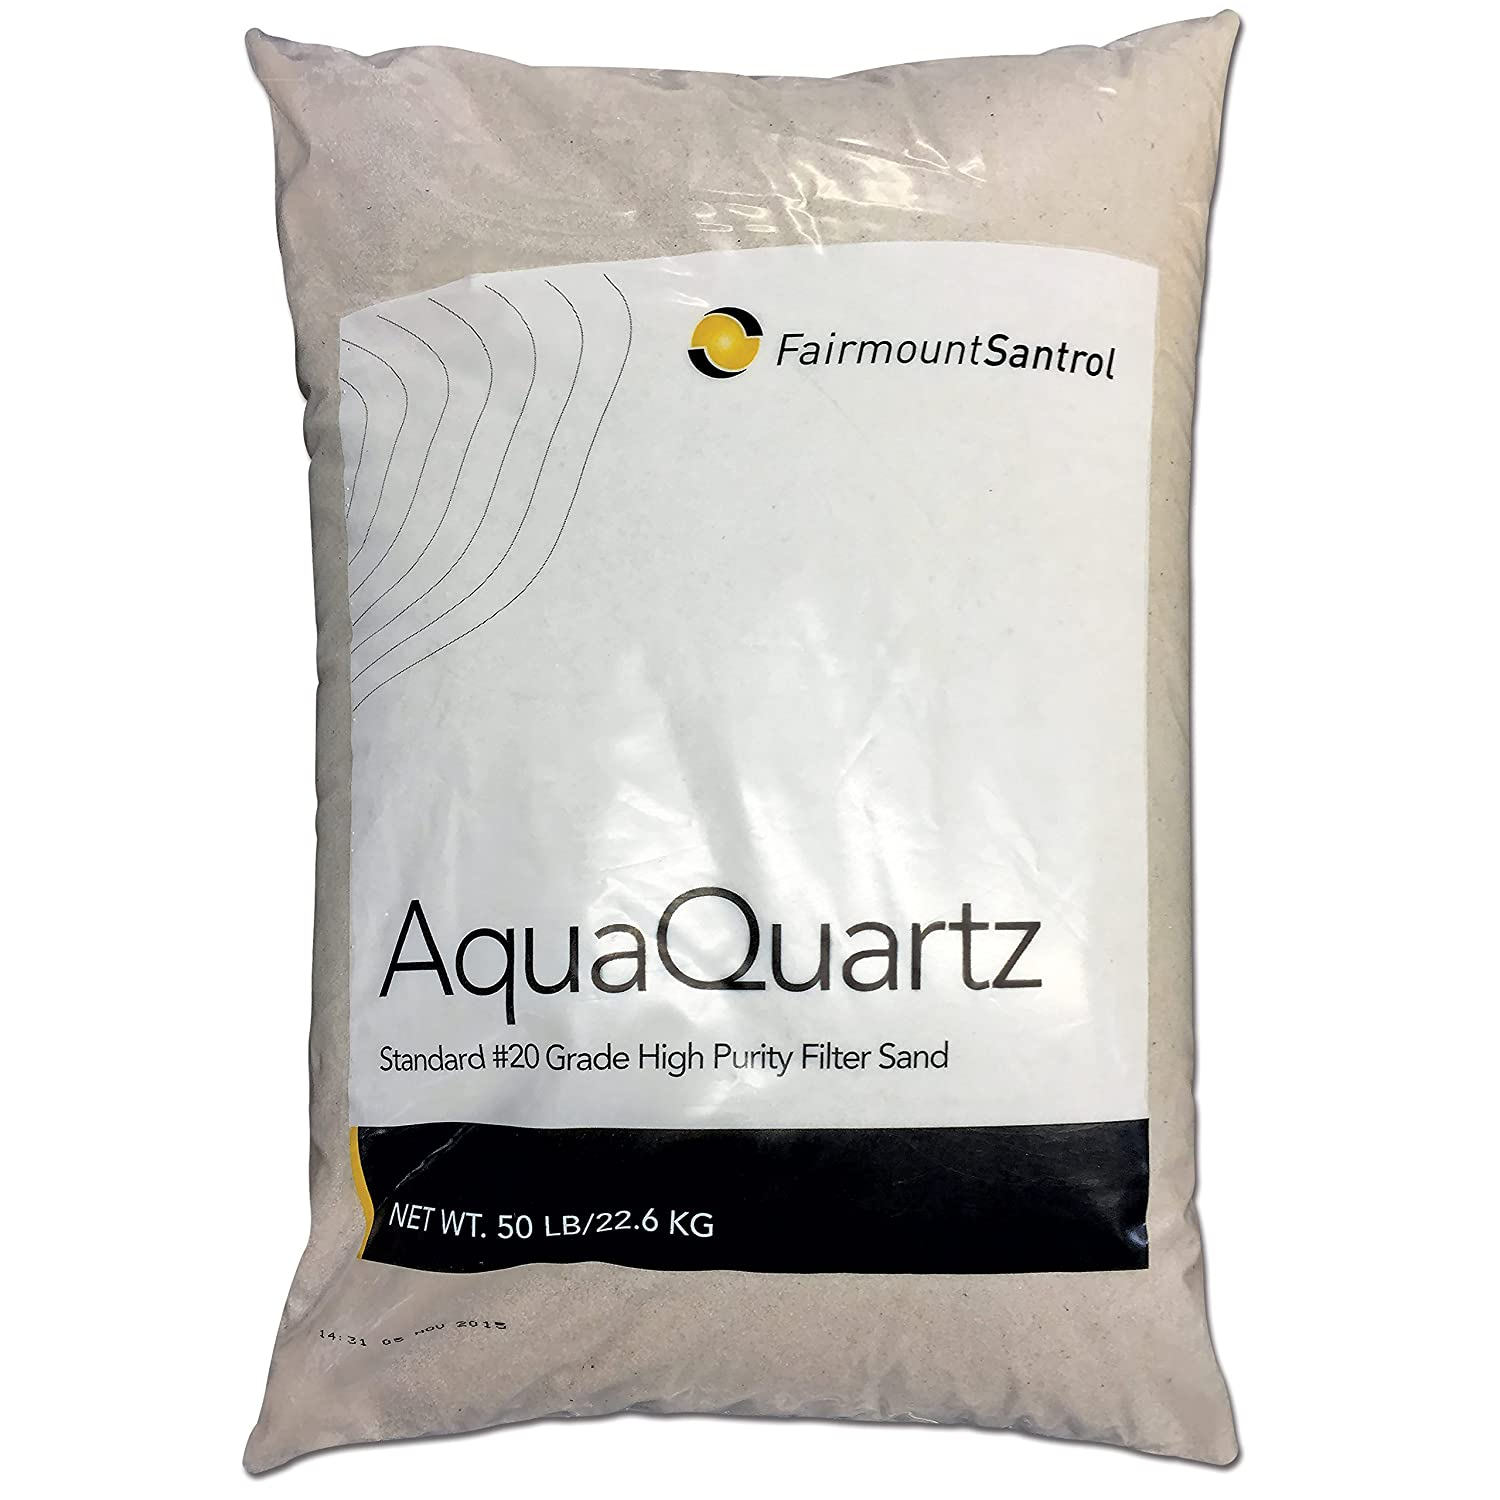 20-Grade Silica Sand for Aquarium